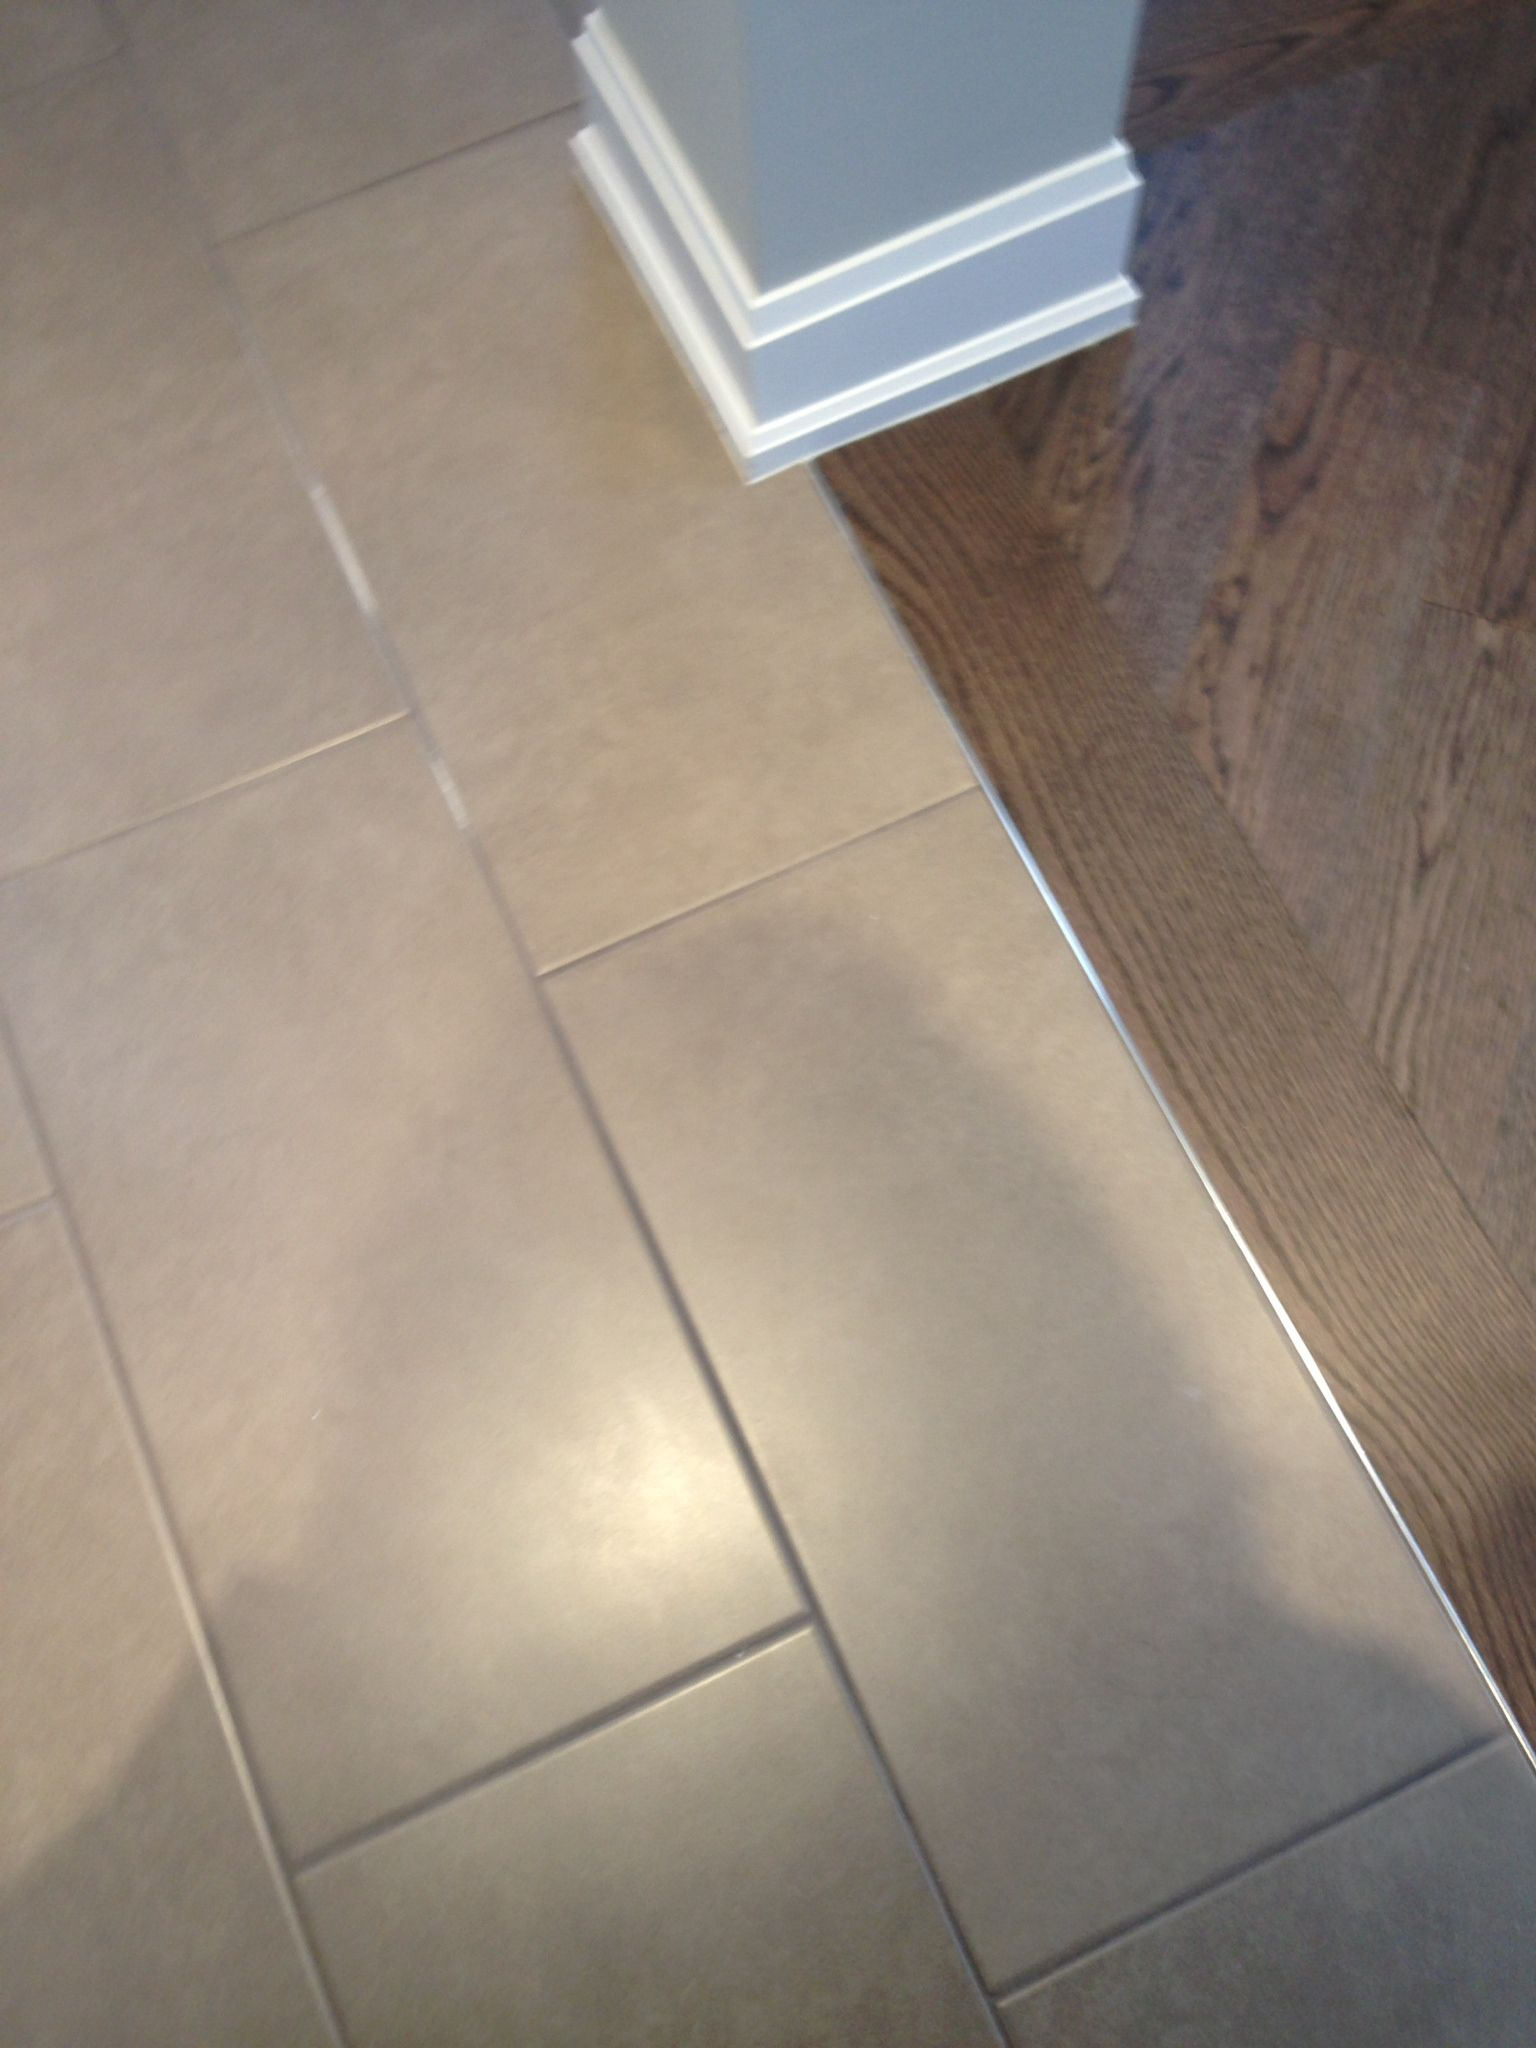 12x24 Kelly Grey Tile From Olympia Tile Installed In A Brick Pattern Nice Size Thinking Floors Bathroom Floor Tiles Tiles Grey Tiles